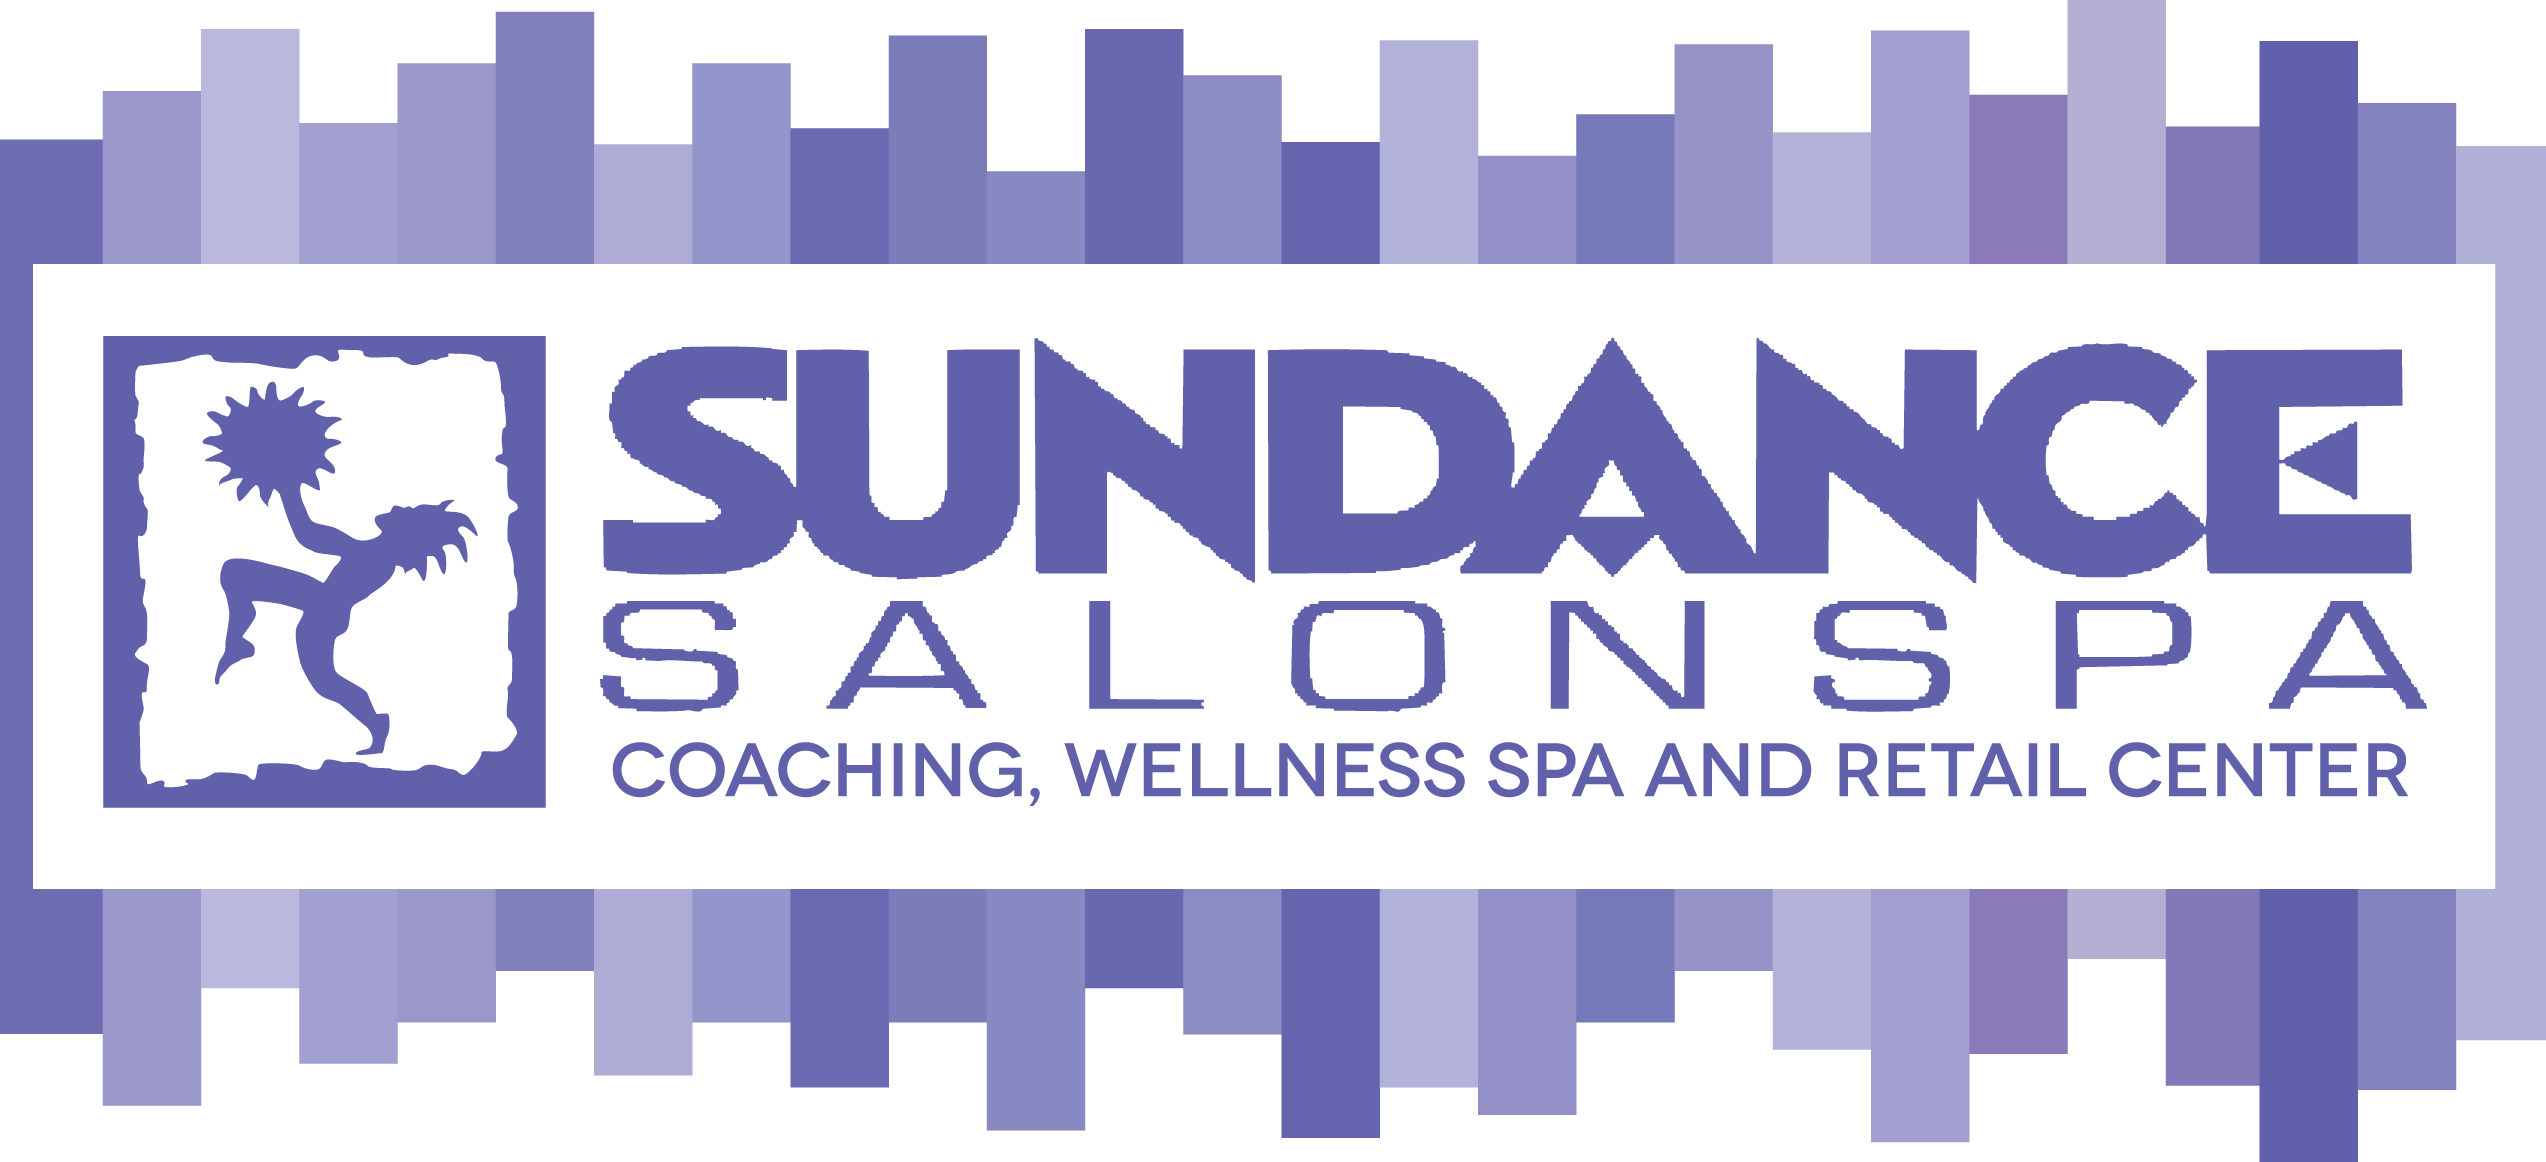 Sundance Salon Spa logo